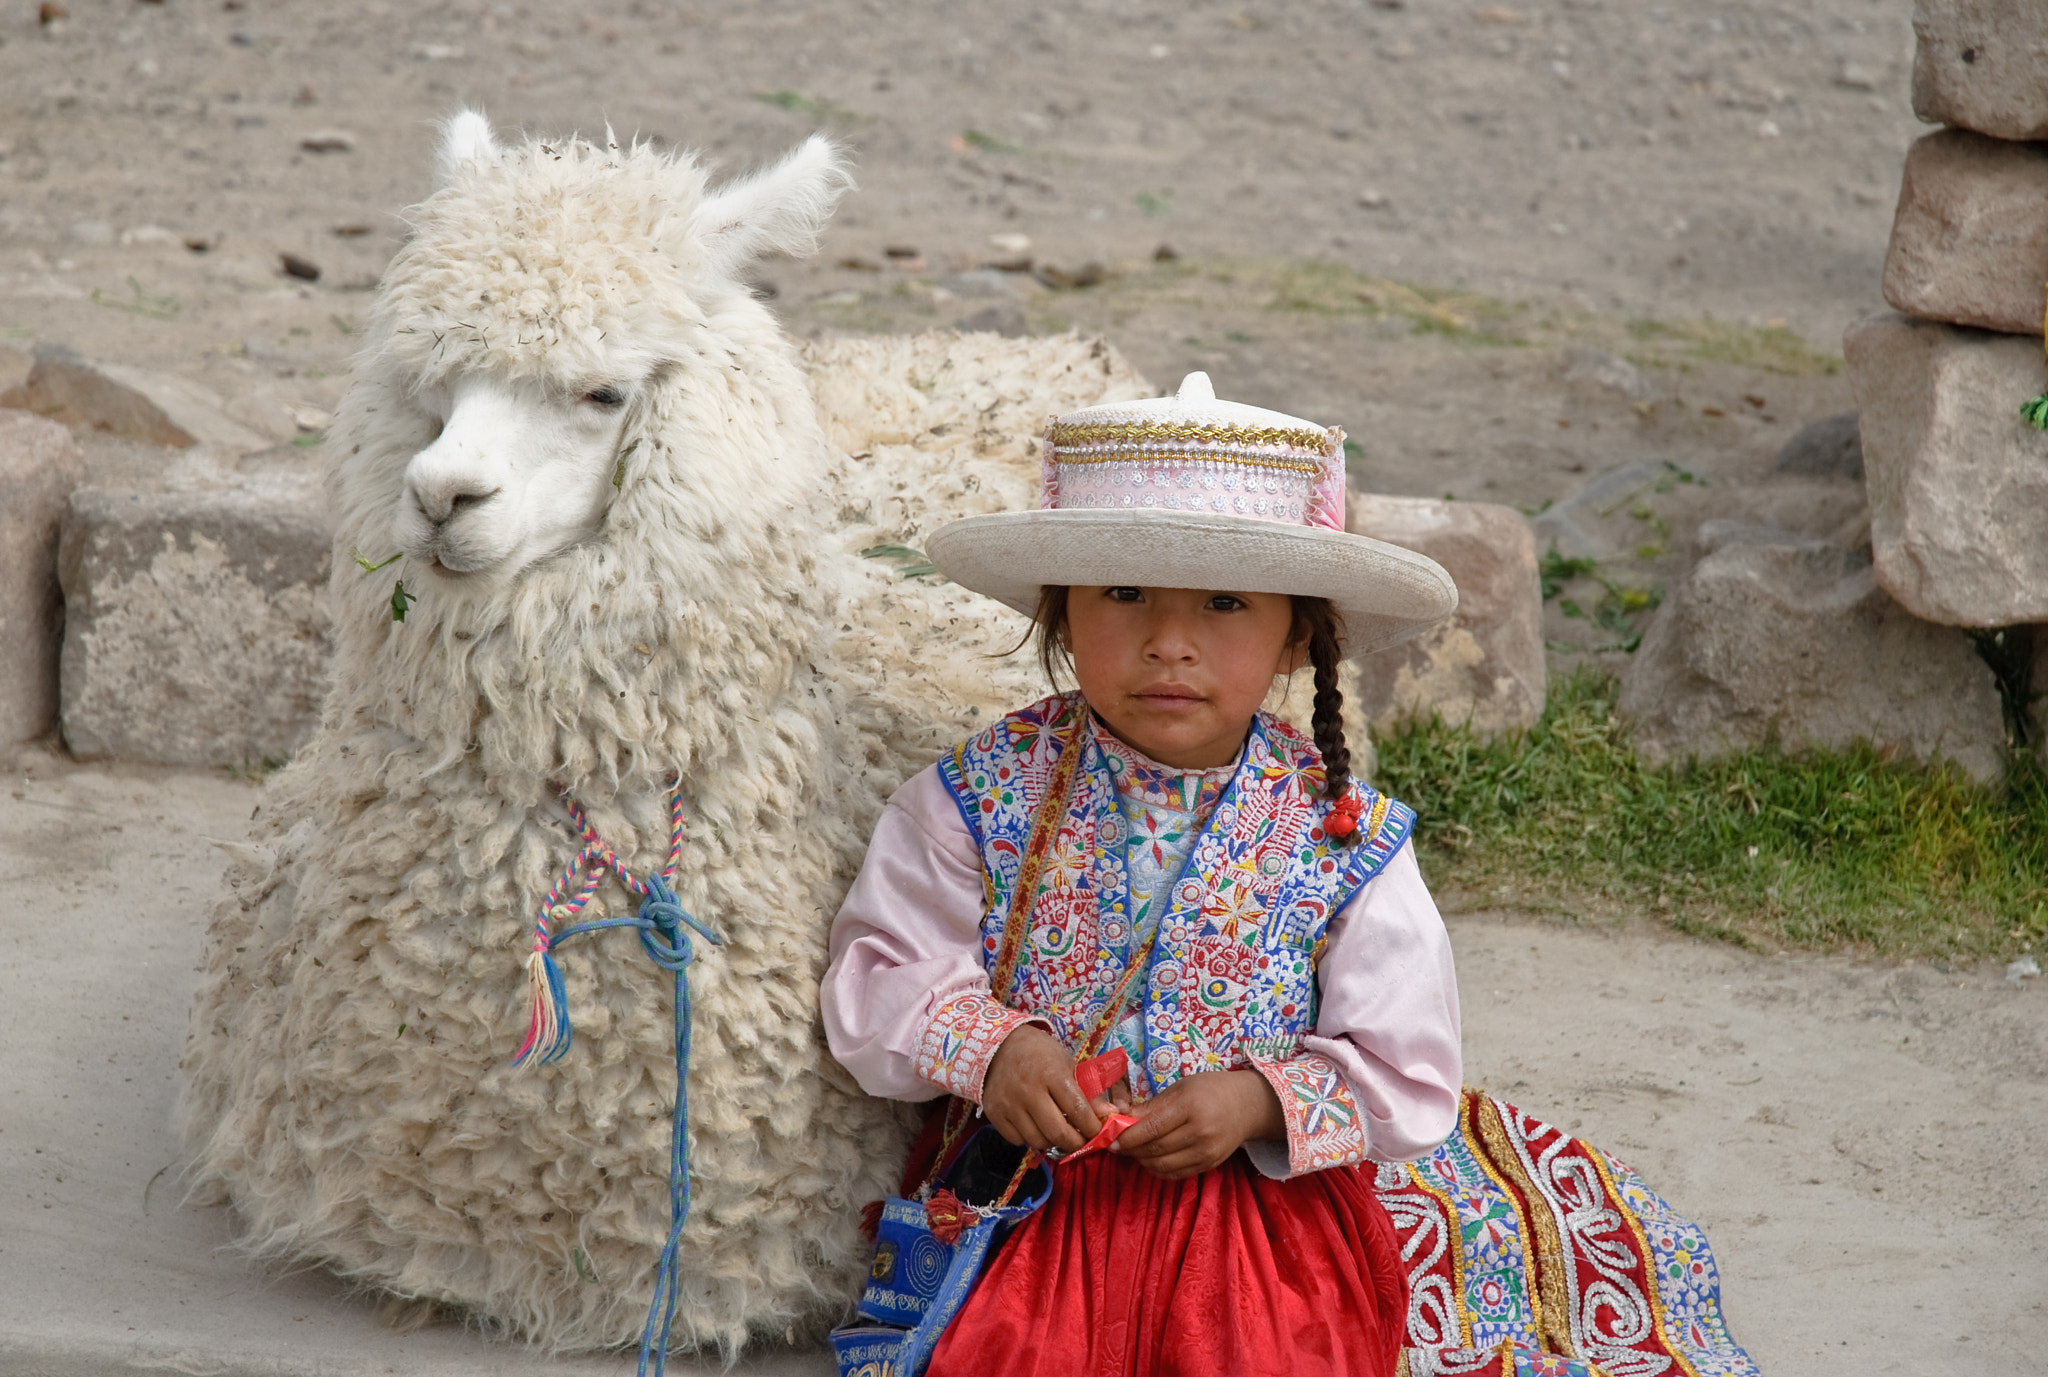 Photograph Chivay, Peru - Peruvian little girl in traditional clothing with alpaca by David Min on 500px